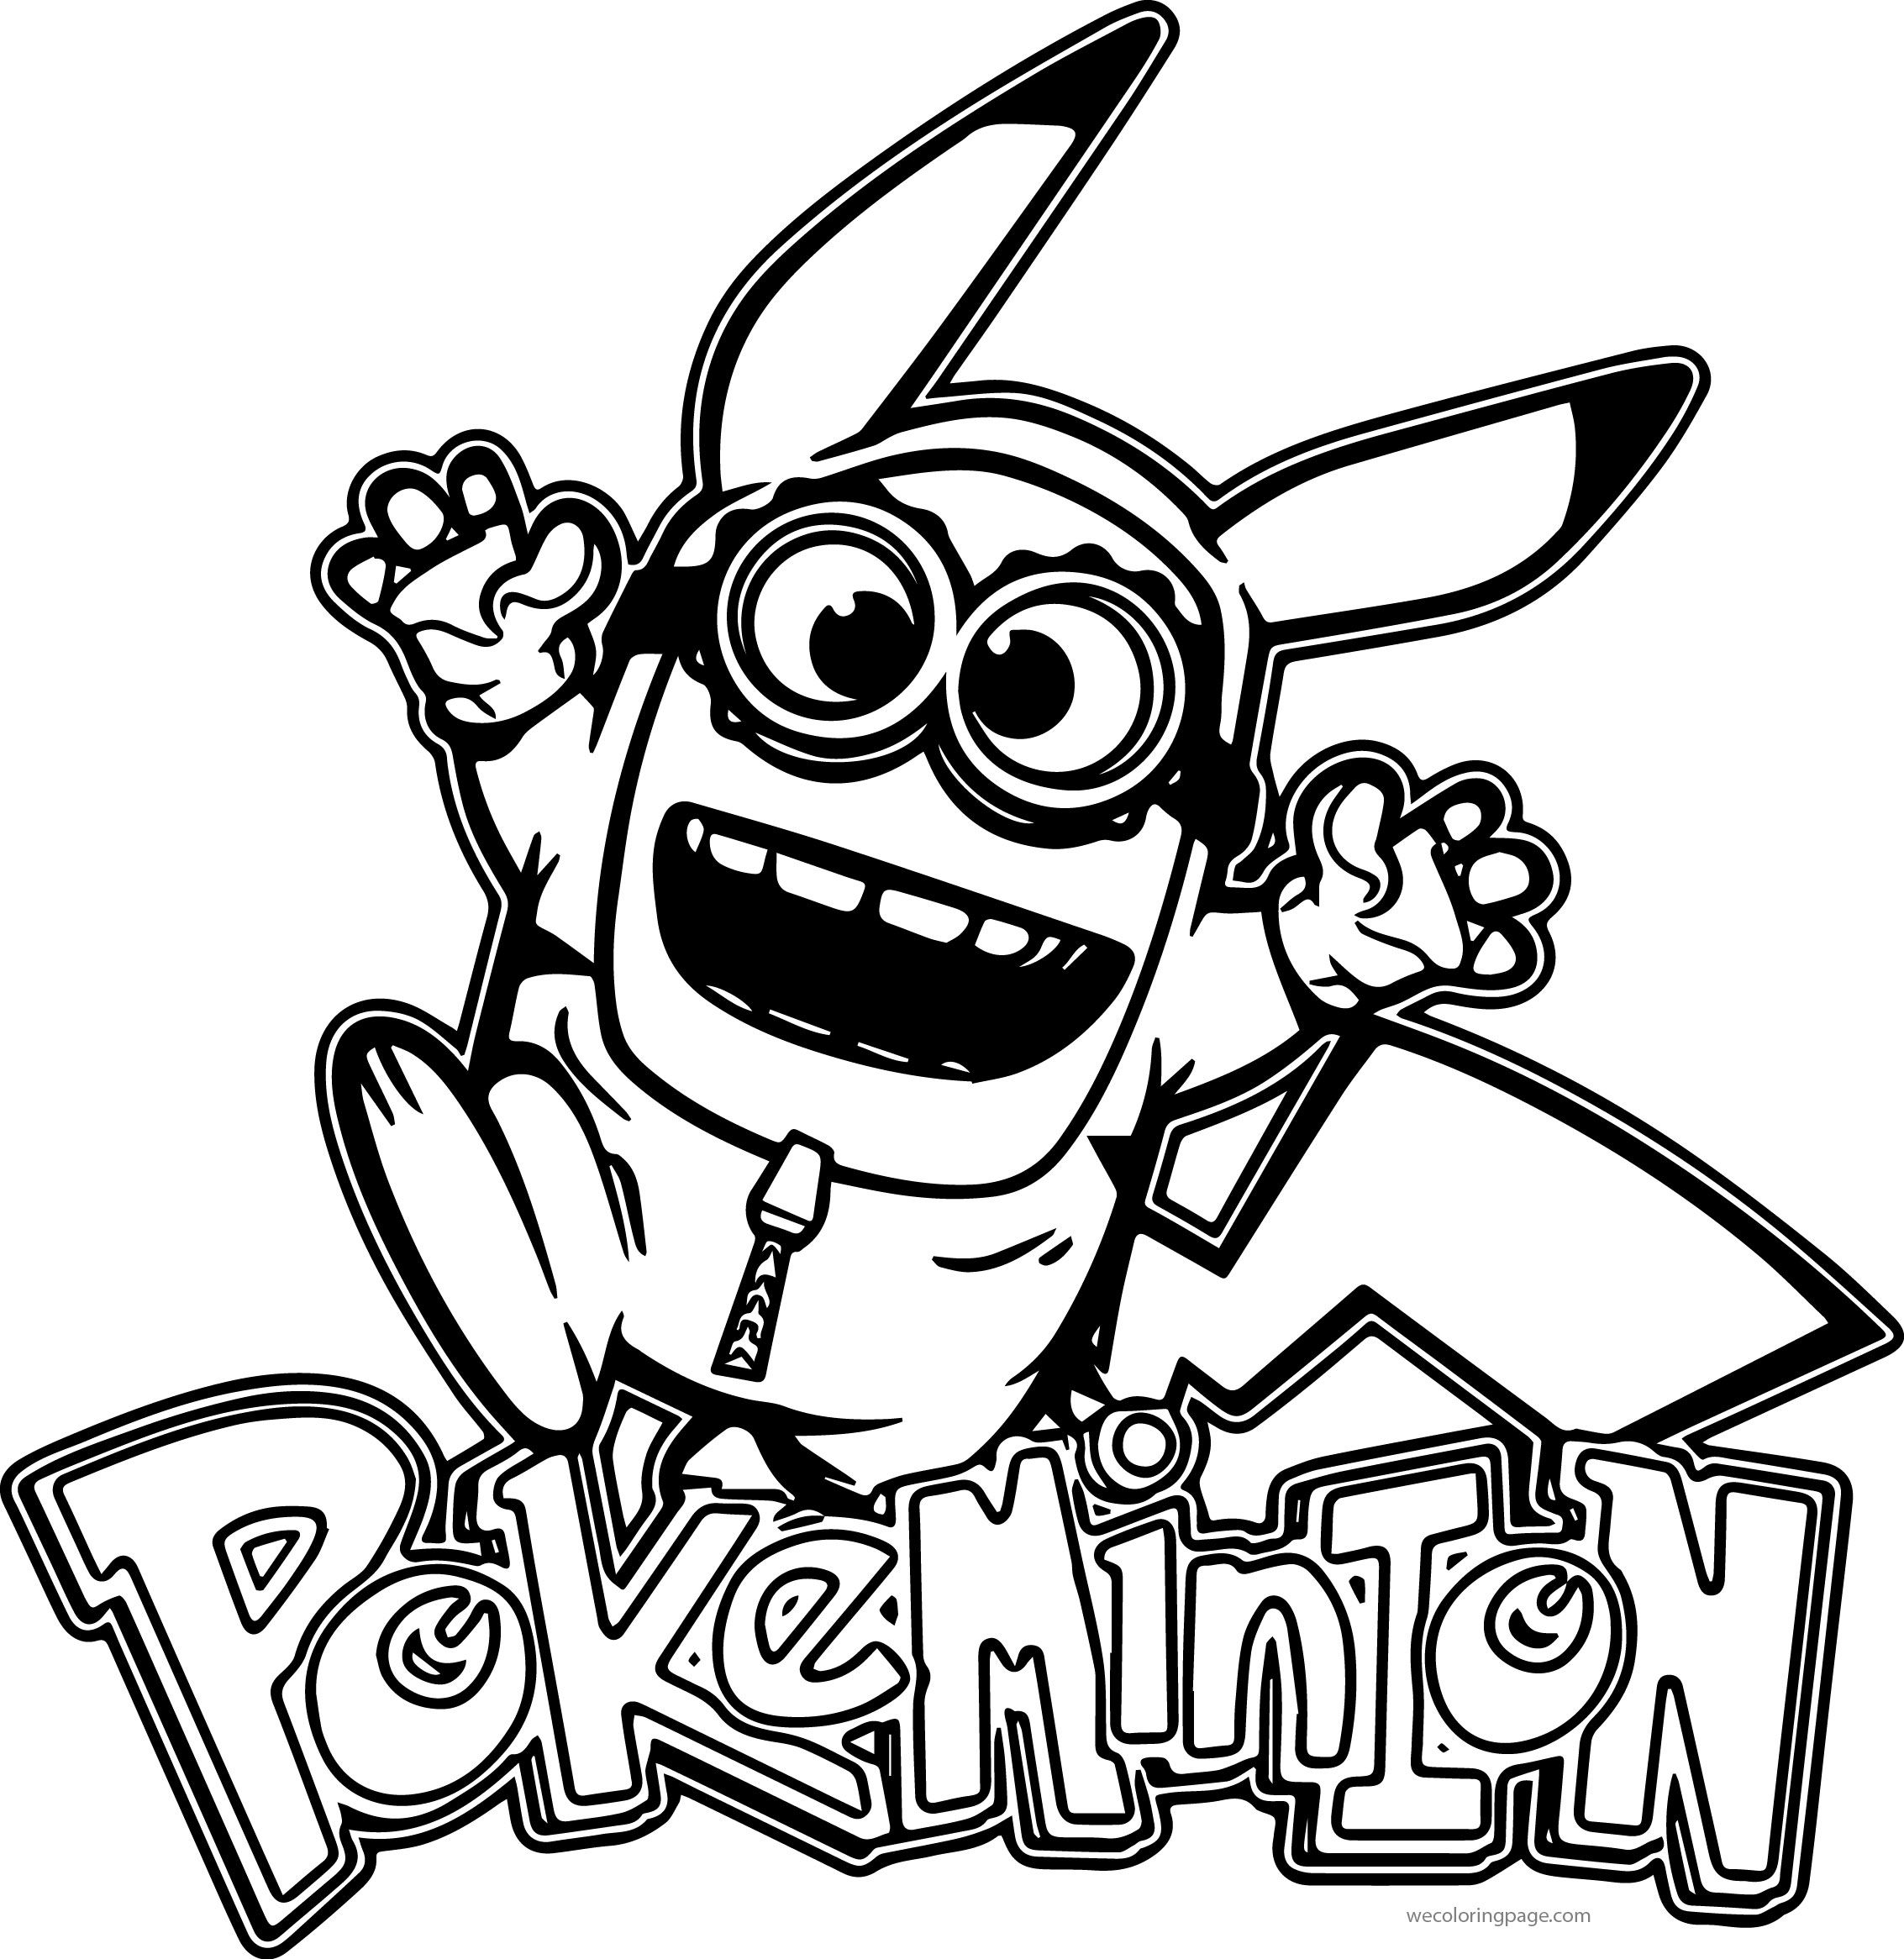 Minion Pikachu Pokemon Coloring Page 02